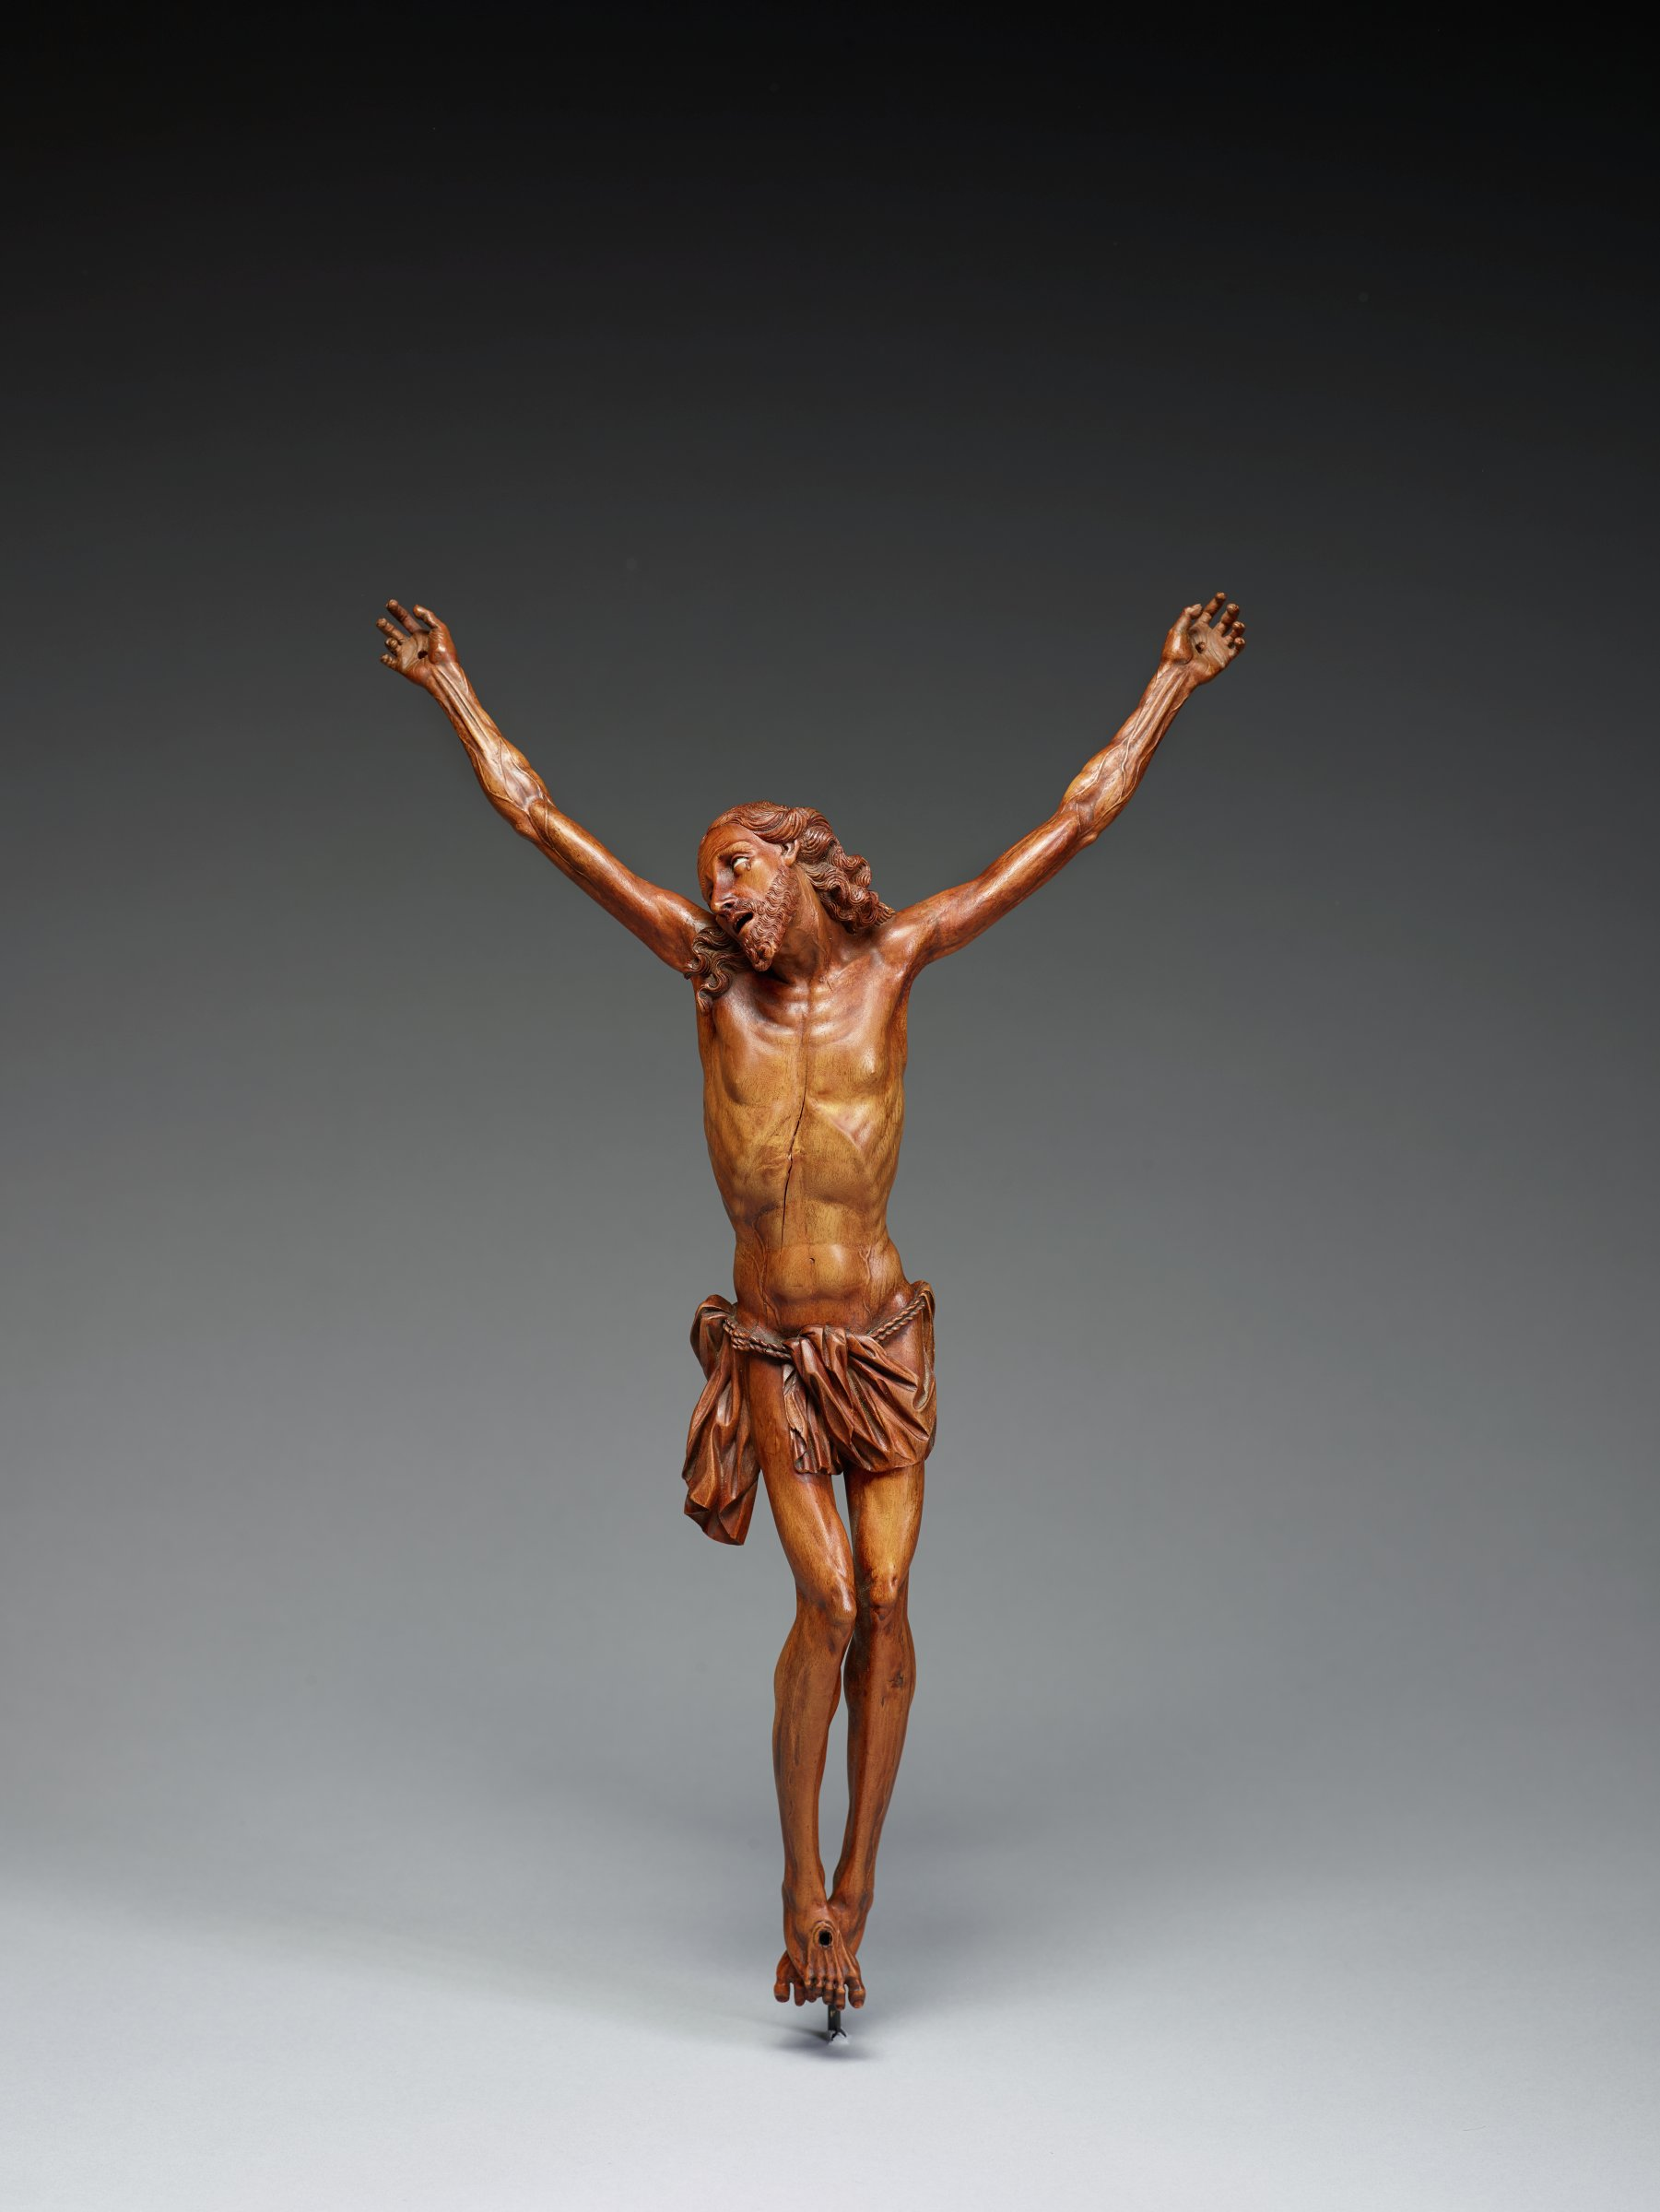 The Figure of Christ on the cross with his head turned sideways looking up.